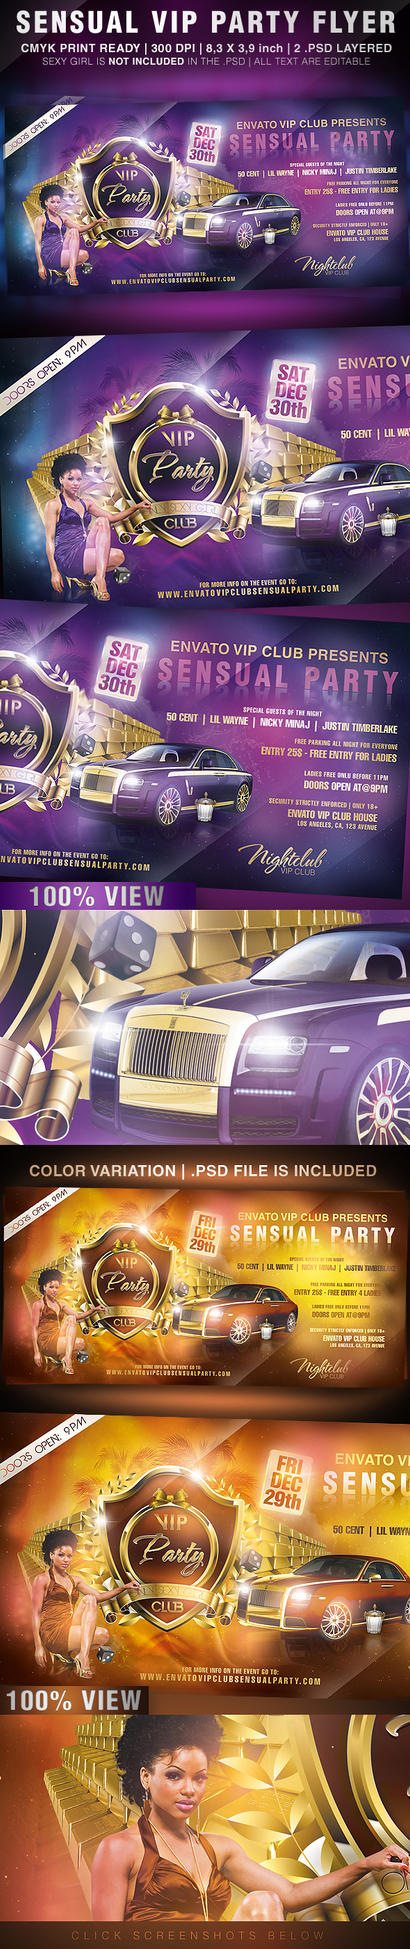 Sensual VIP Party Flyer by KoolGfx